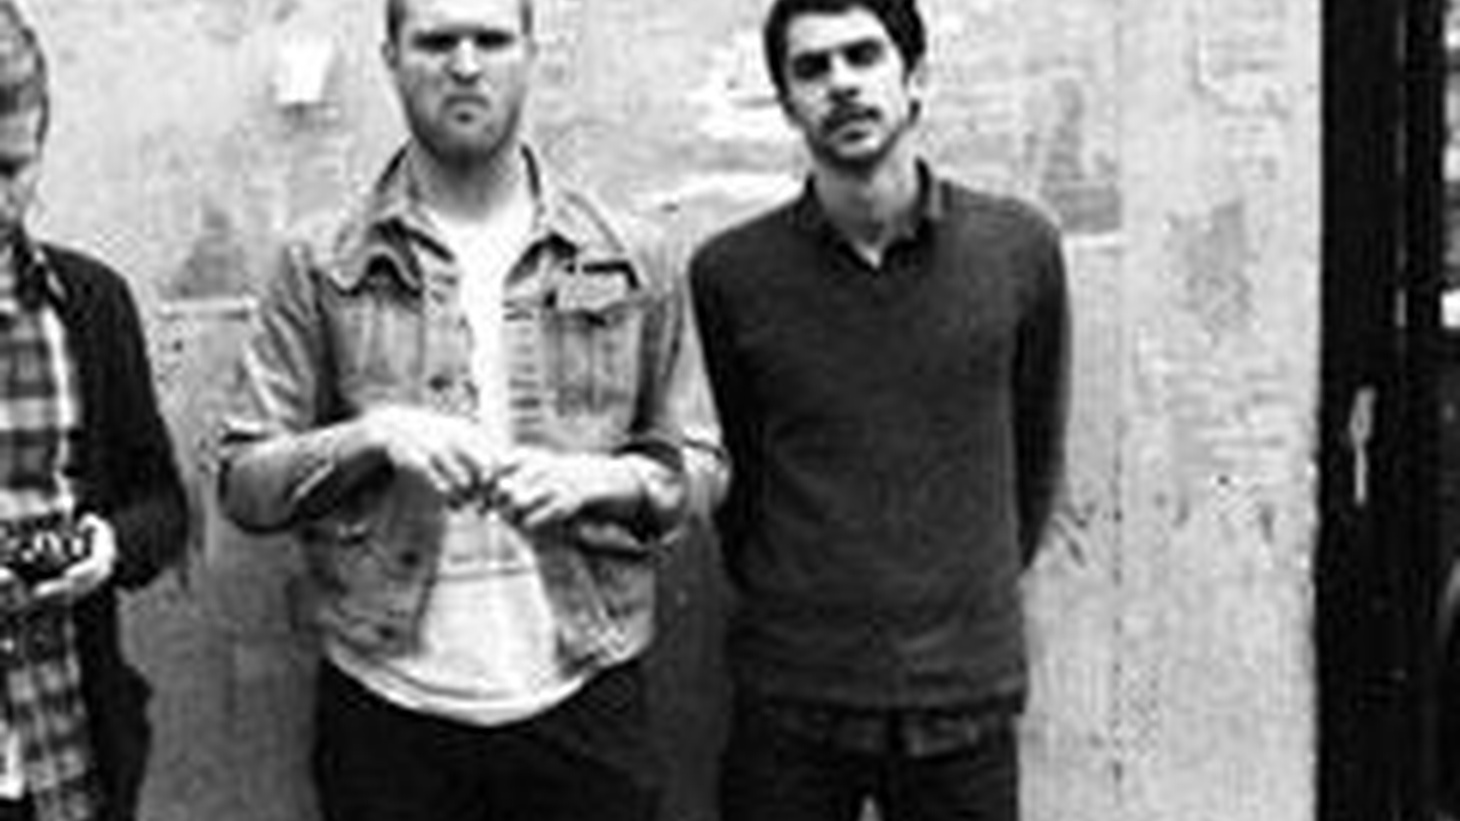 Fullerton based Cold War Kids return with an arsenal of new tunes for Morning Becomes Eclectic at 11:15am.